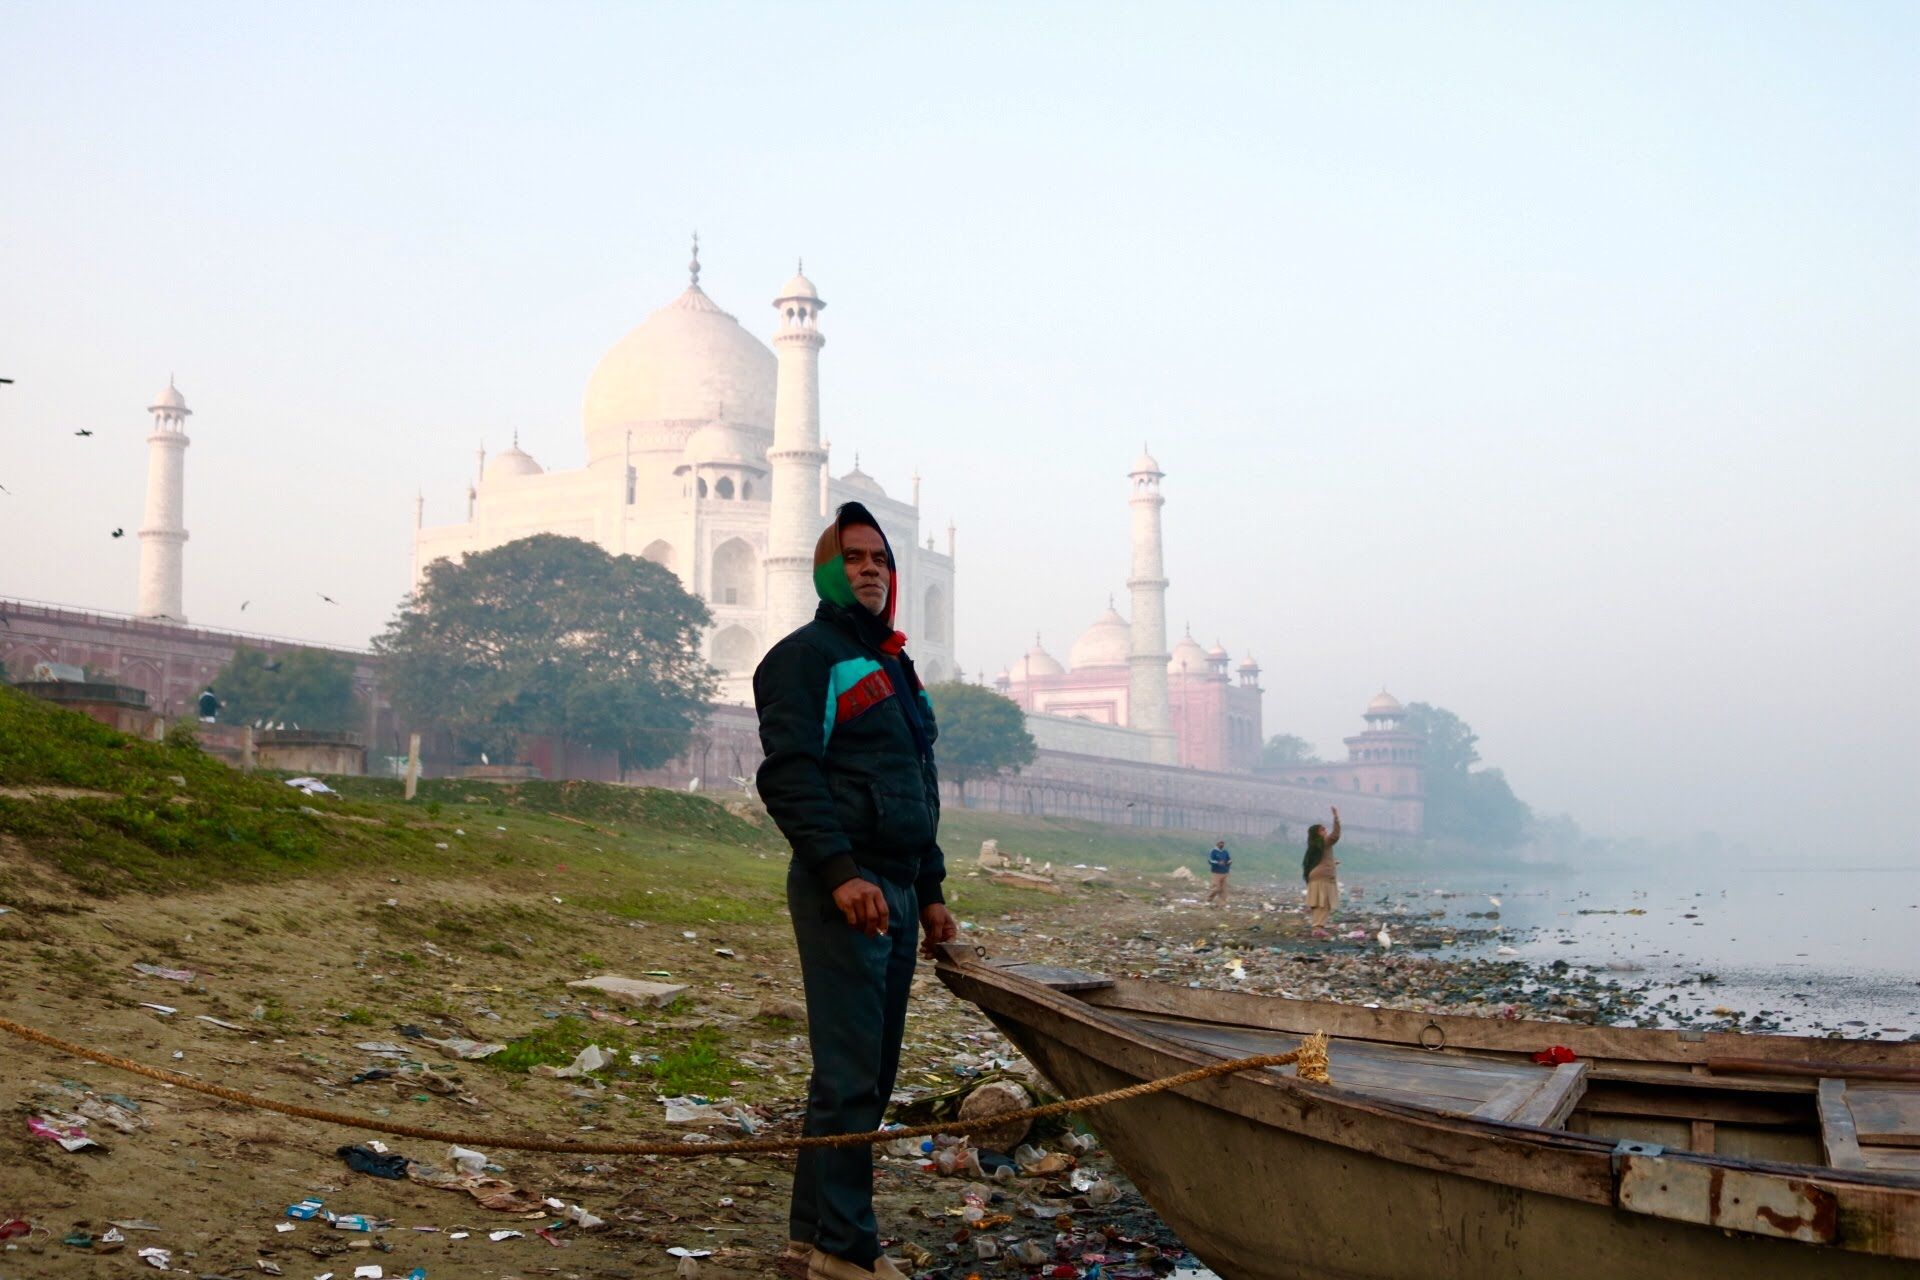 Alternative view of the Taj Mahal